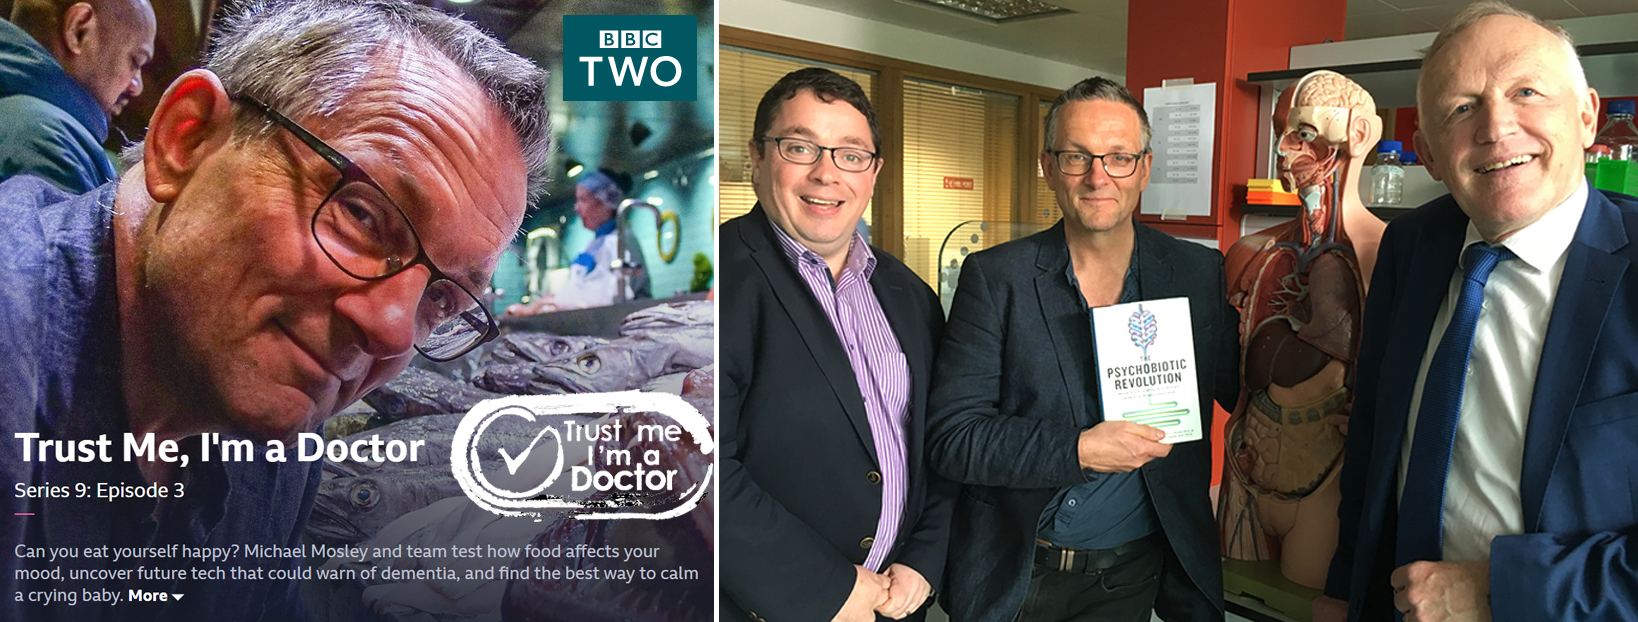 John Cryan, Ted Dinan & team on 'Trust me I'm a Doctor'